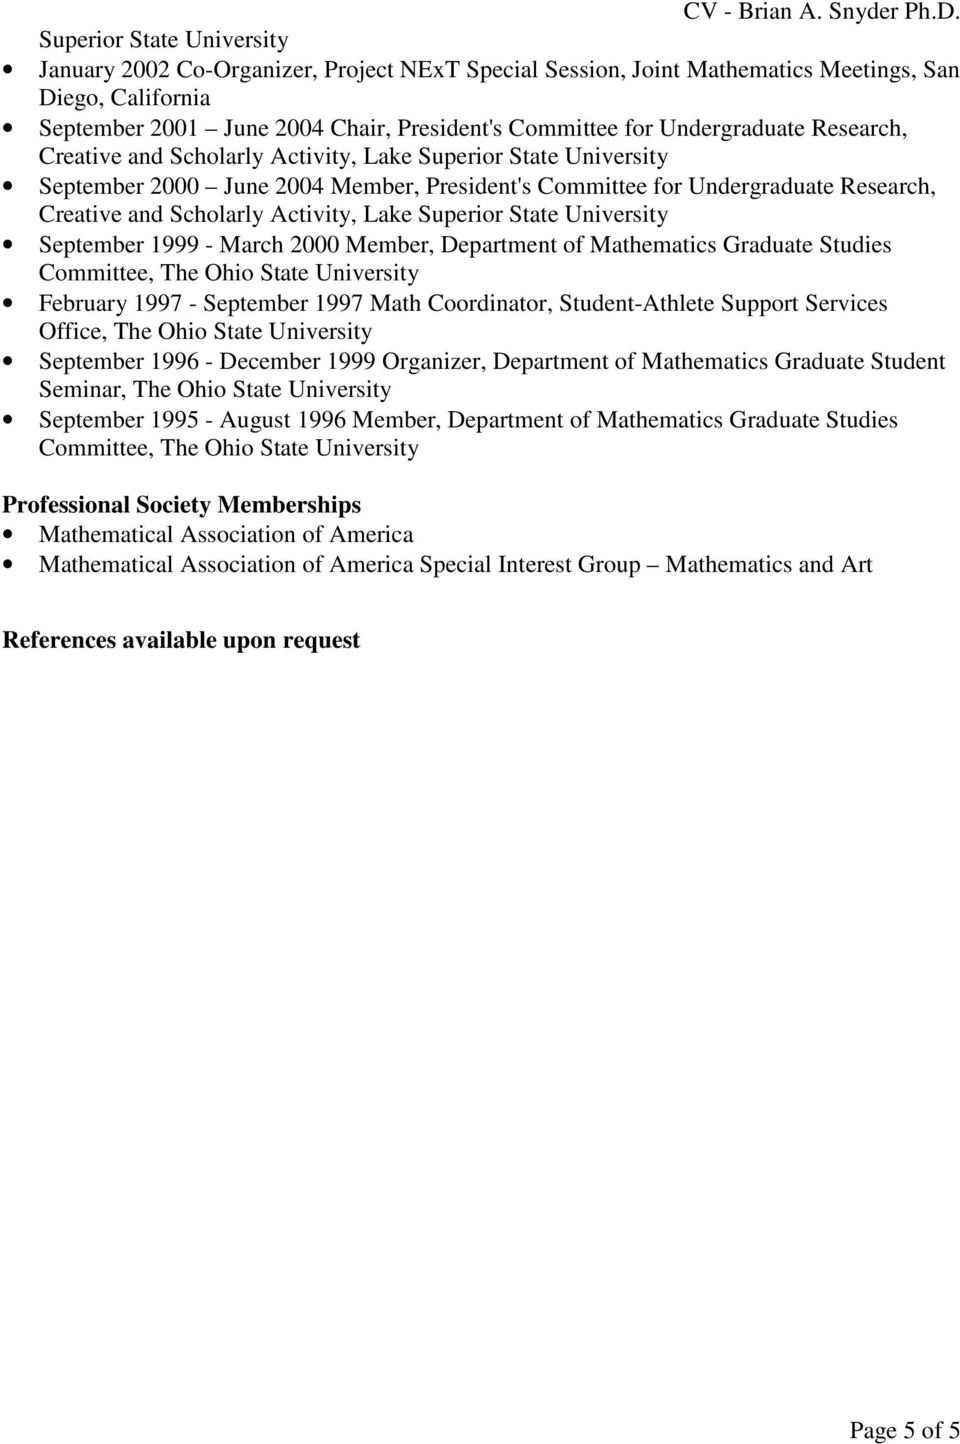 September 1999 - March 2000 Member, Department of Mathematics Graduate Studies Committee, The Ohio State February 1997 - September 1997 Math Coordinator, Student-Athlete Support Services Office, The